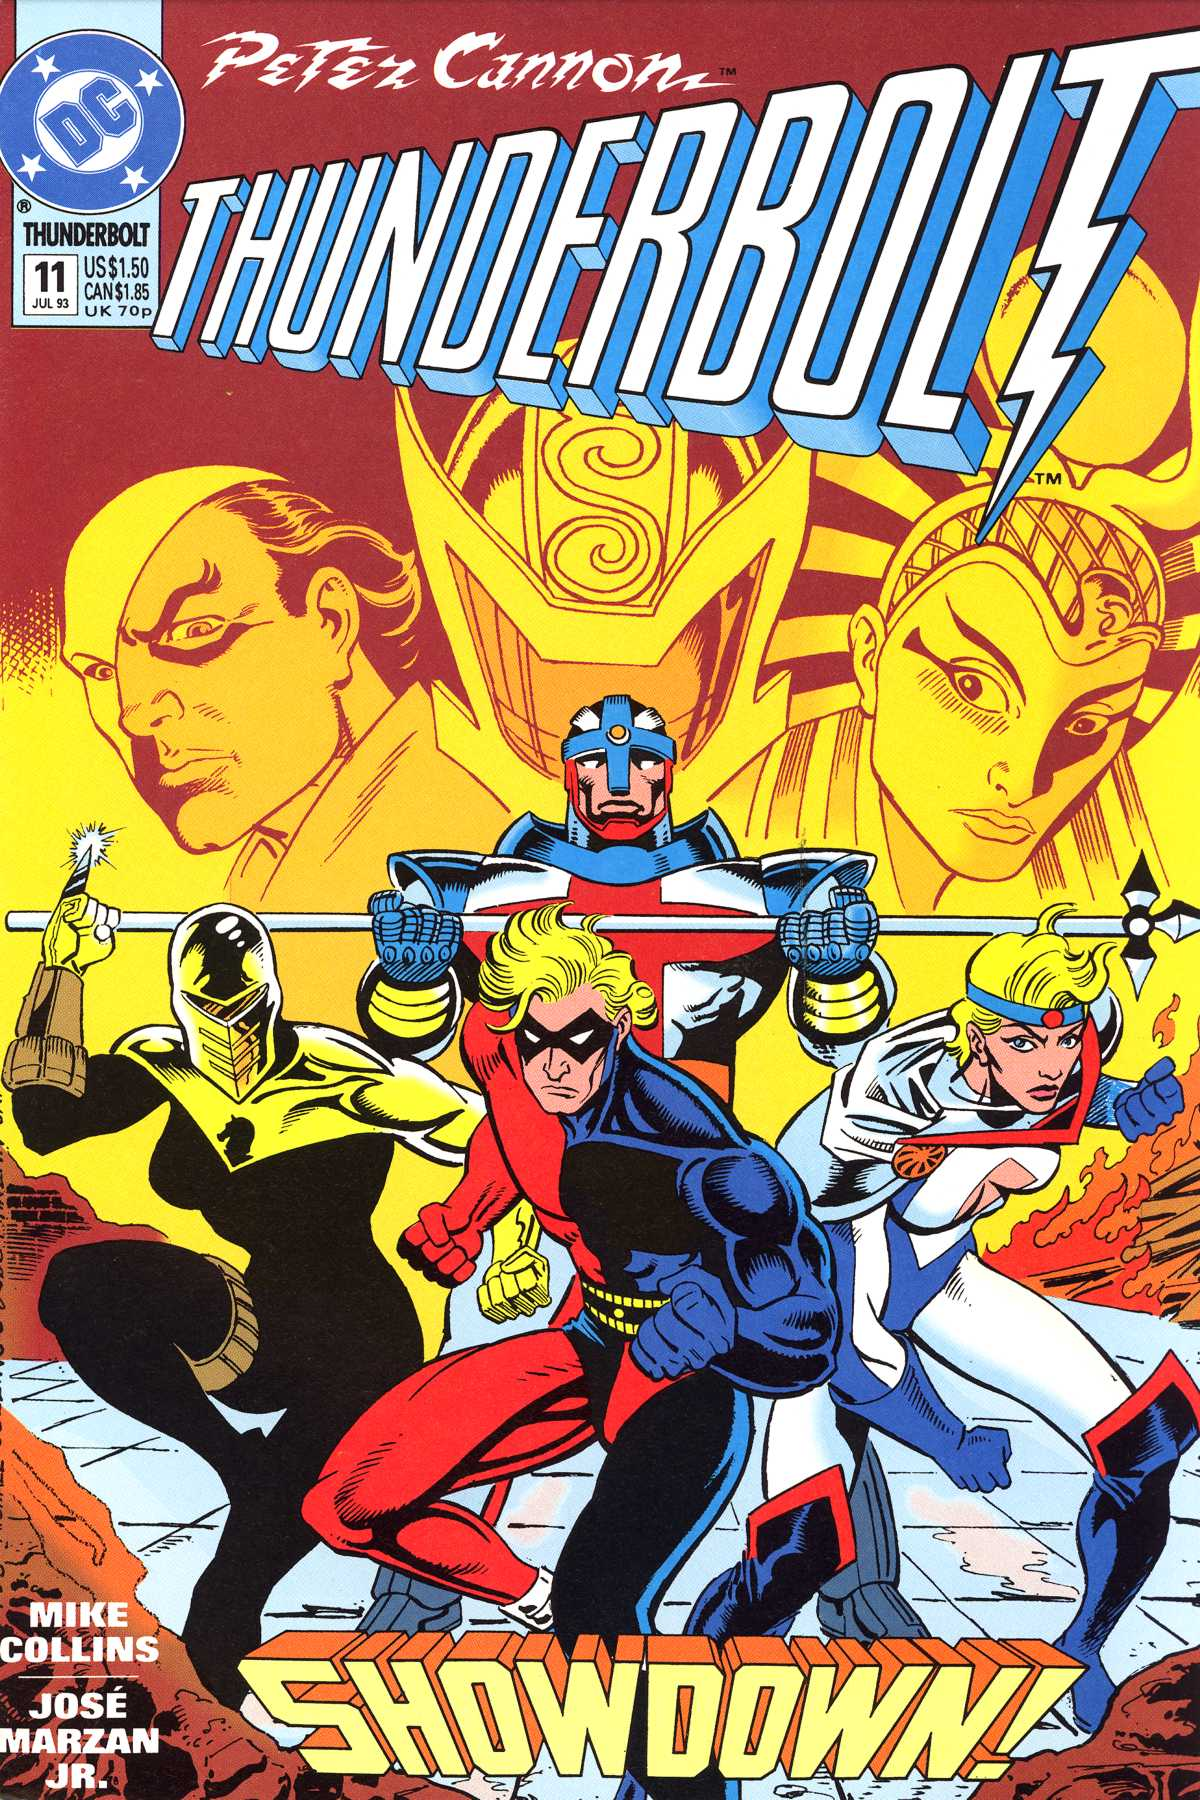 Read online Peter Cannon--Thunderbolt (1992) comic -  Issue #11 - 1